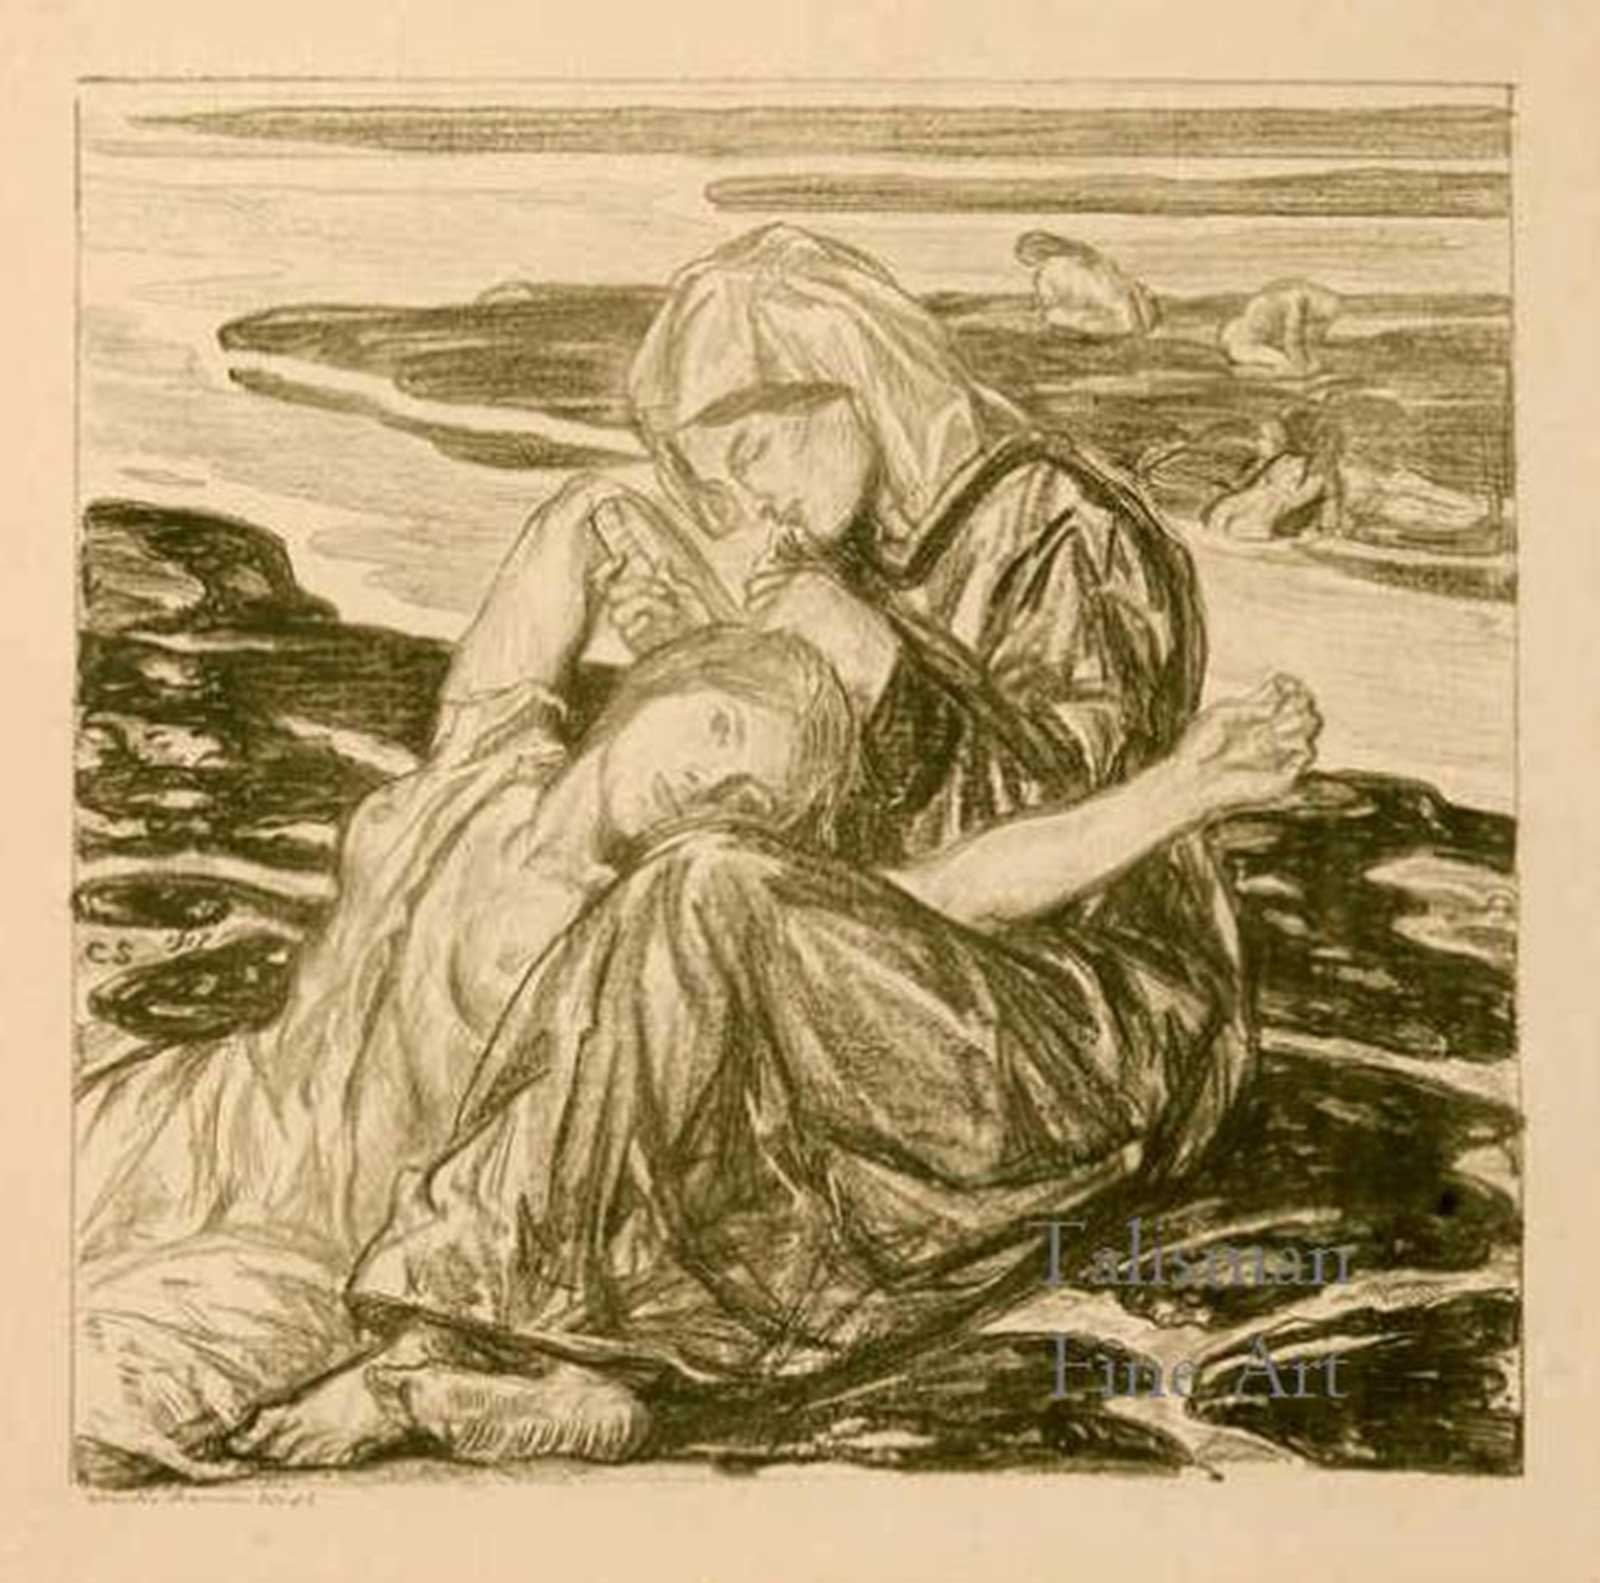 Talusman Fine Art Charles Haslewood Shannon - The Ebb Tide (in green), lithograph. (We have more lithographs by Shanno